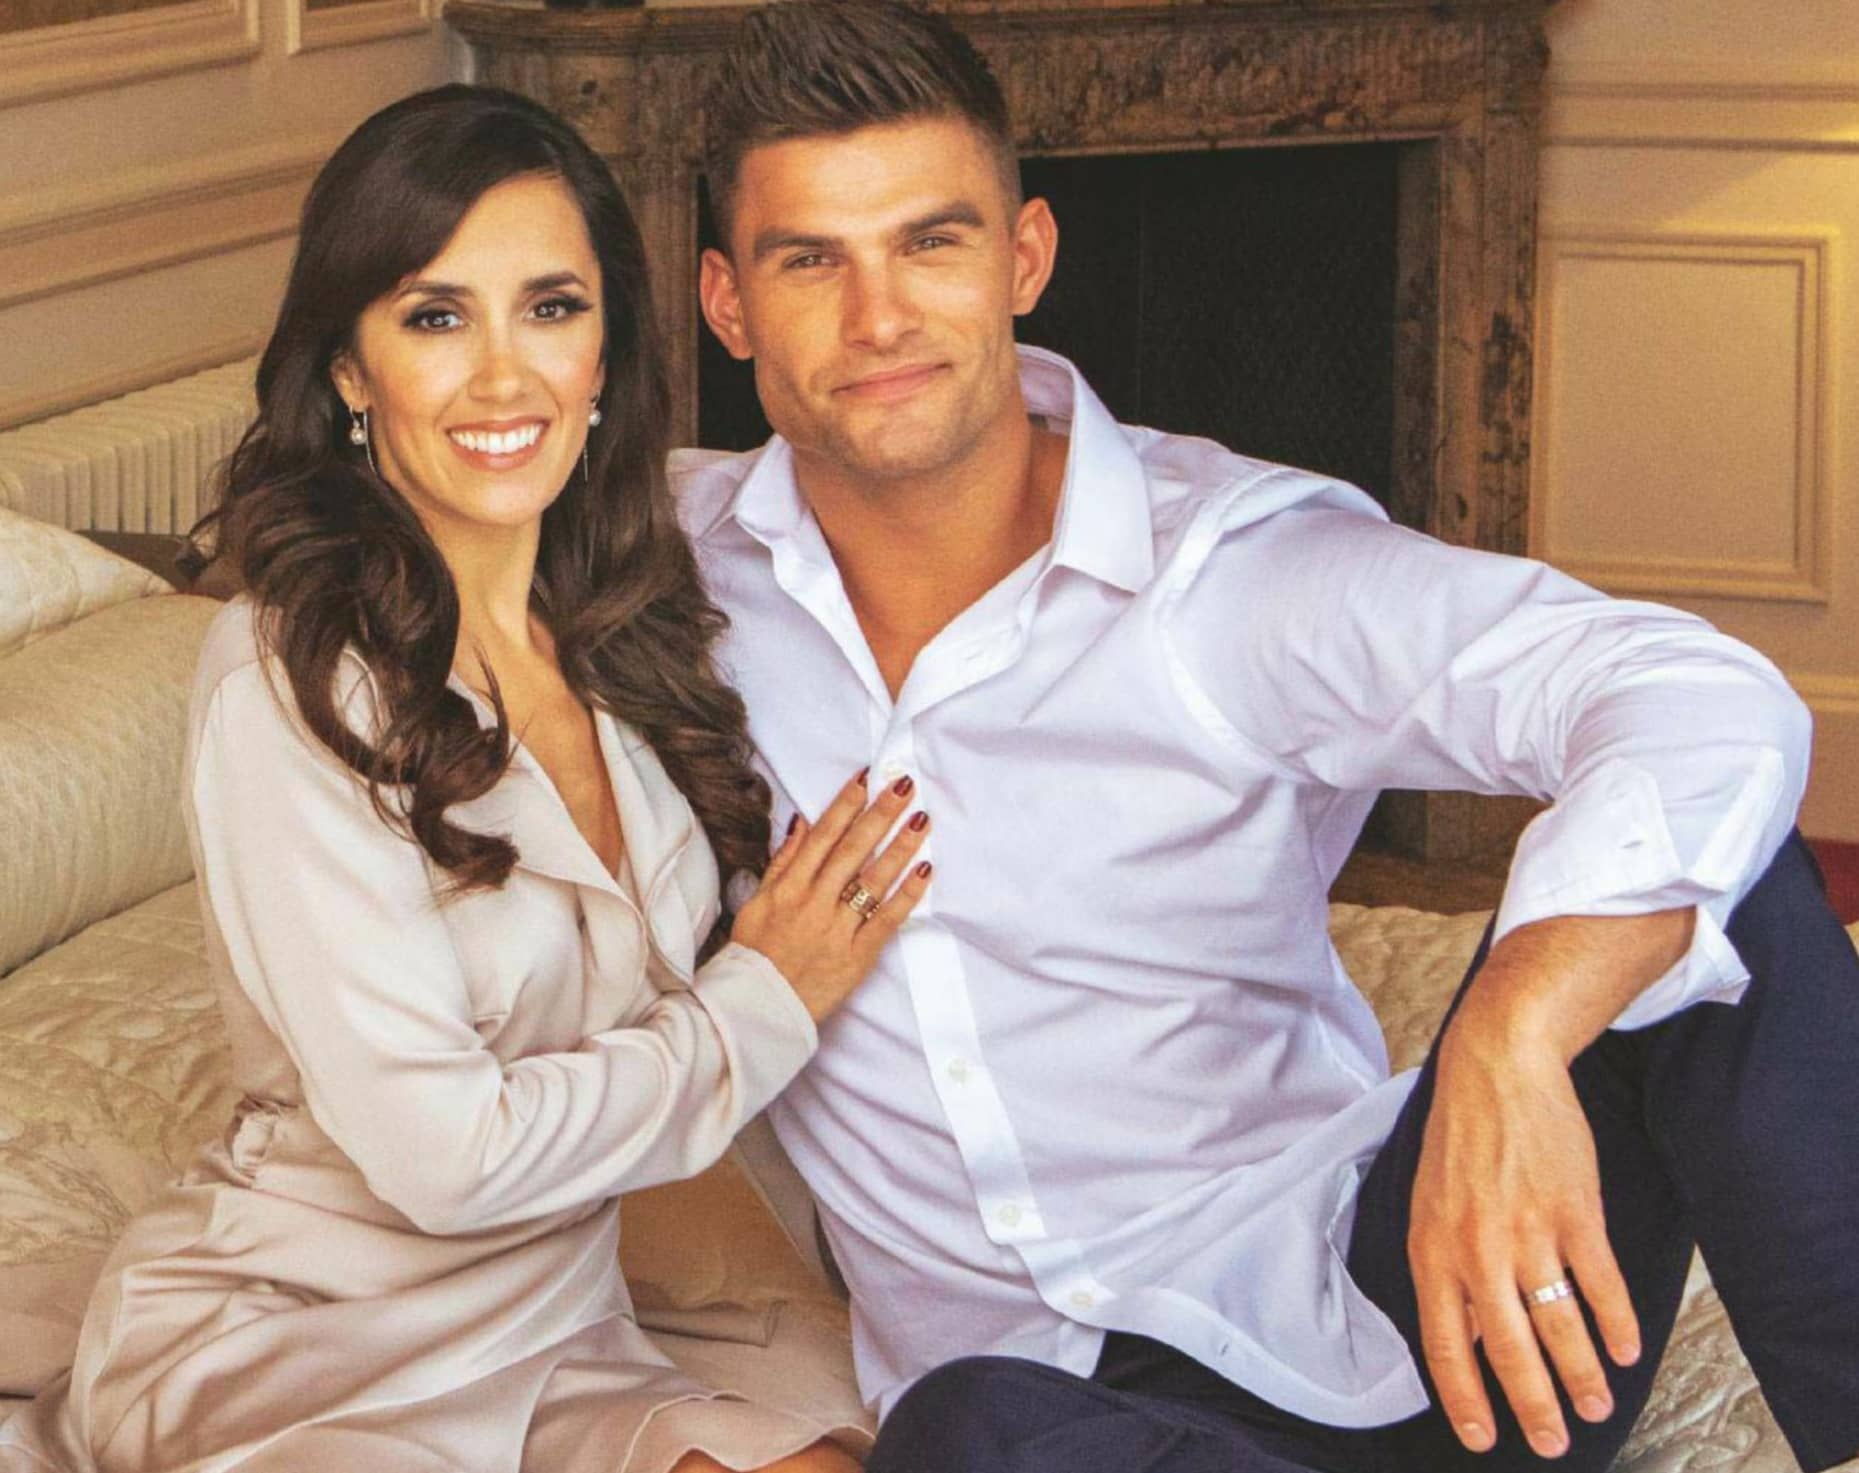 Married Couple And 'strictly Come Dancing' Stars Talk Love, Laughter And Little Ones As They Waltz Off For A Rare Romantic Getaway Aljaz Skorjanec And Janette Manrara